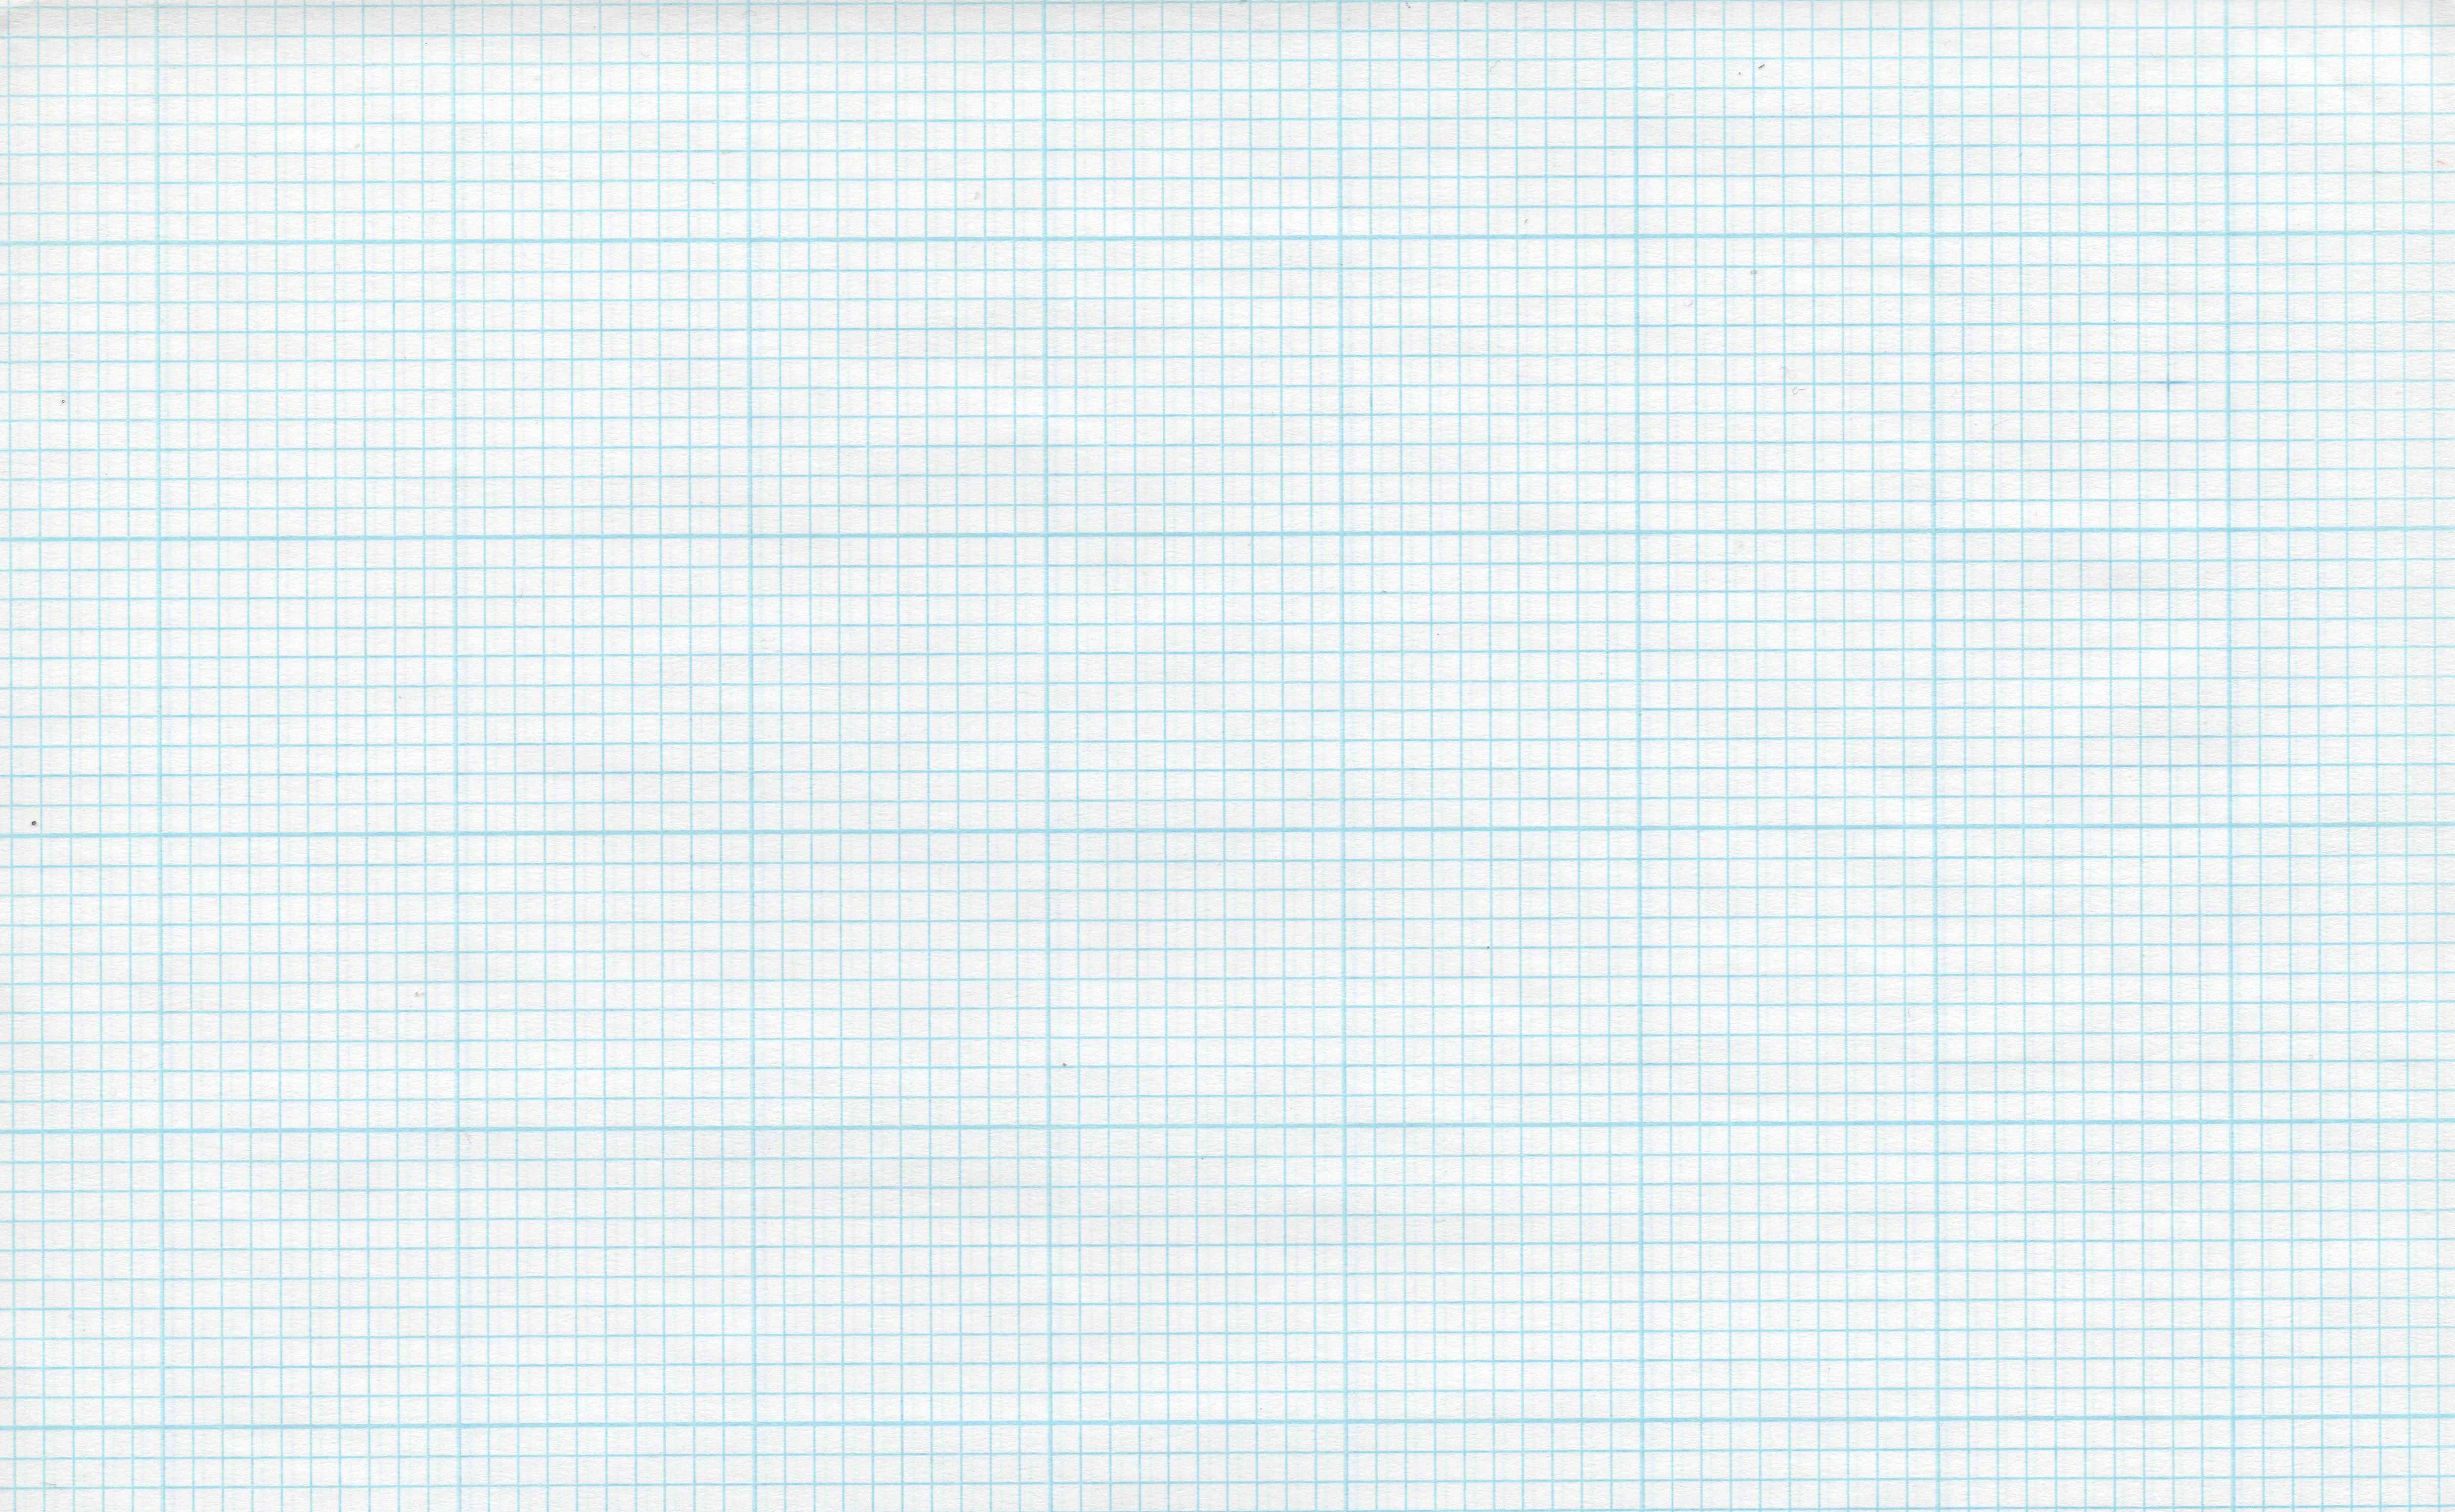 Graph Paper By Rawen713 On Deviantart